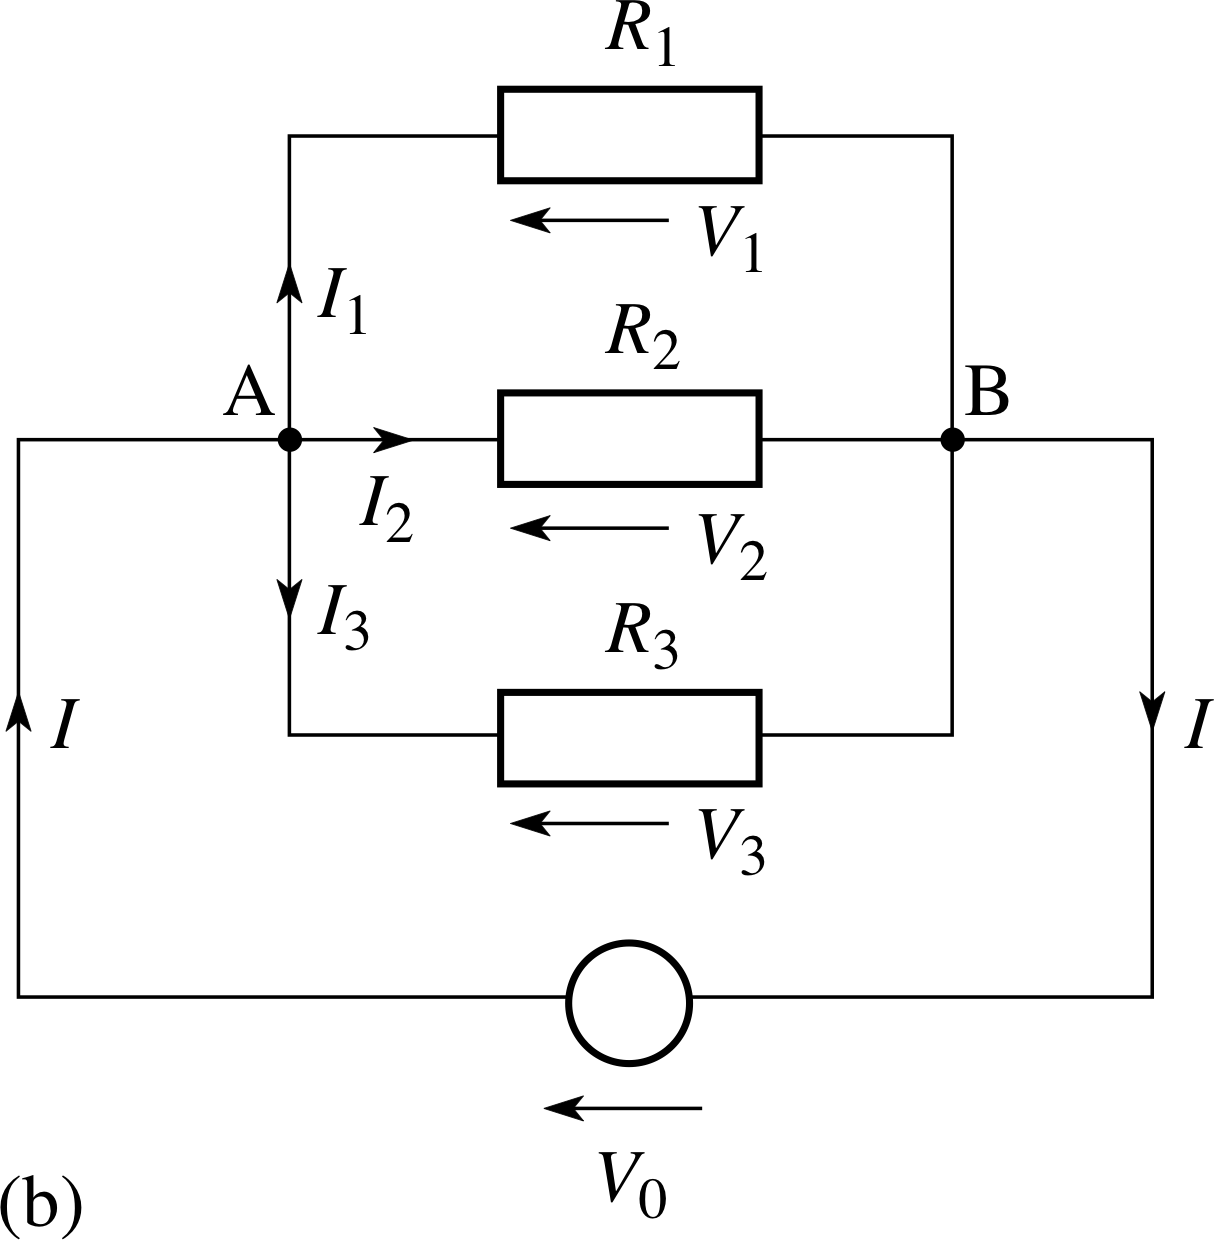 Pplato Flap Phys 41 Dc Circuits And Currents Connect The Series Circuit As Shown In Figure Below Using 10 15b Three Resistors Connected